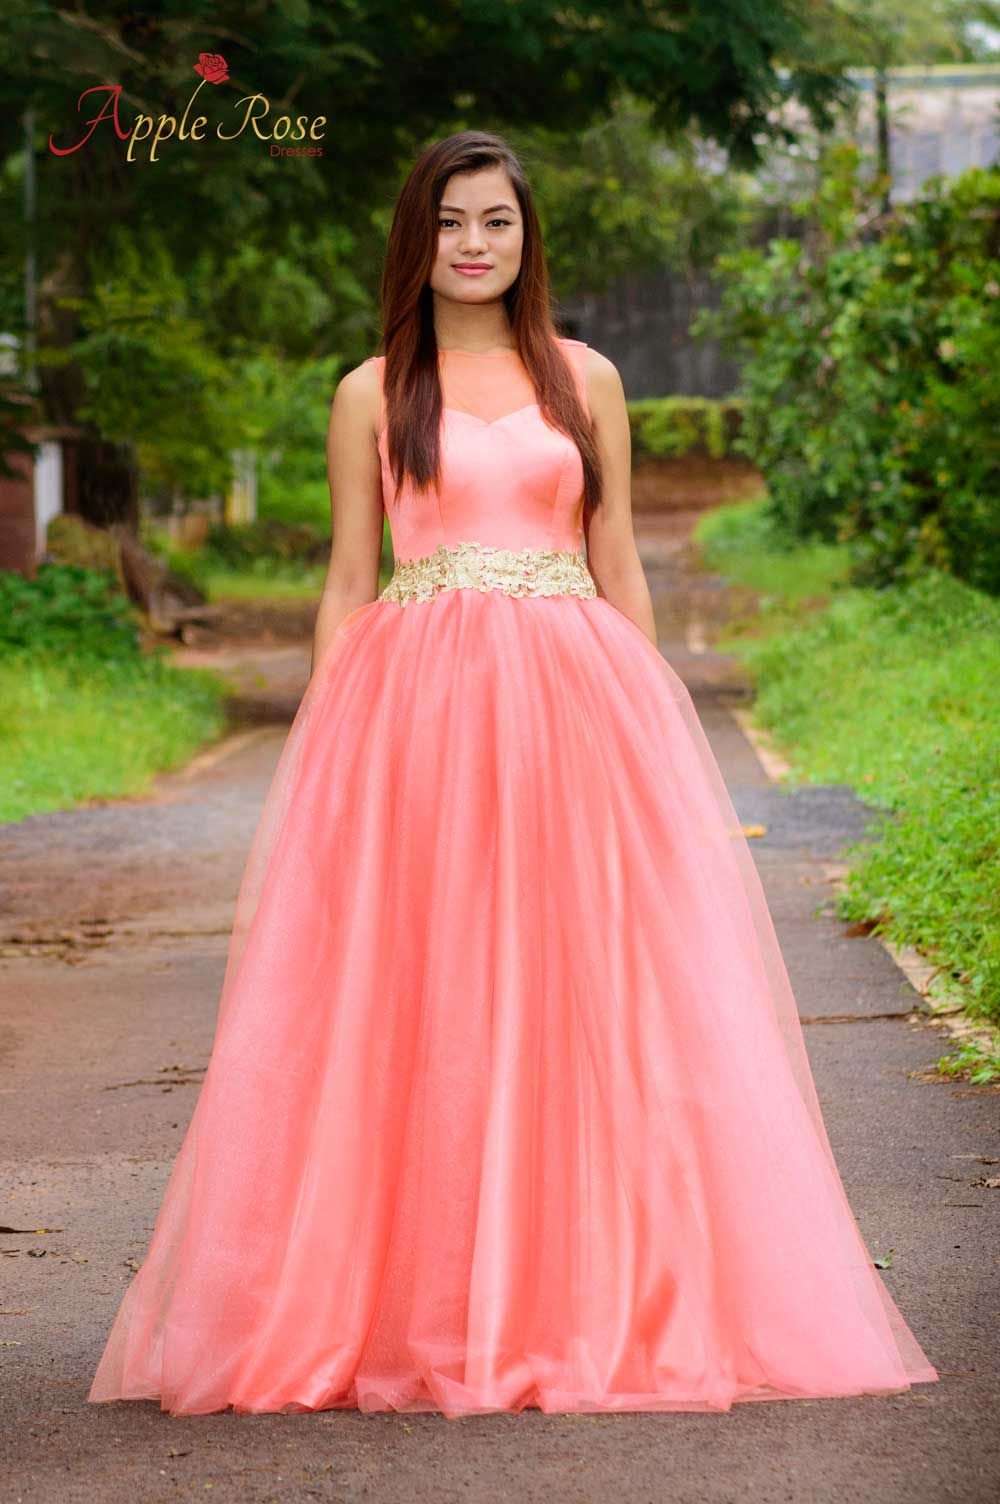 Peachy Princess Gown | Apple Rose Dresses | Sexy Dresses | Pinterest